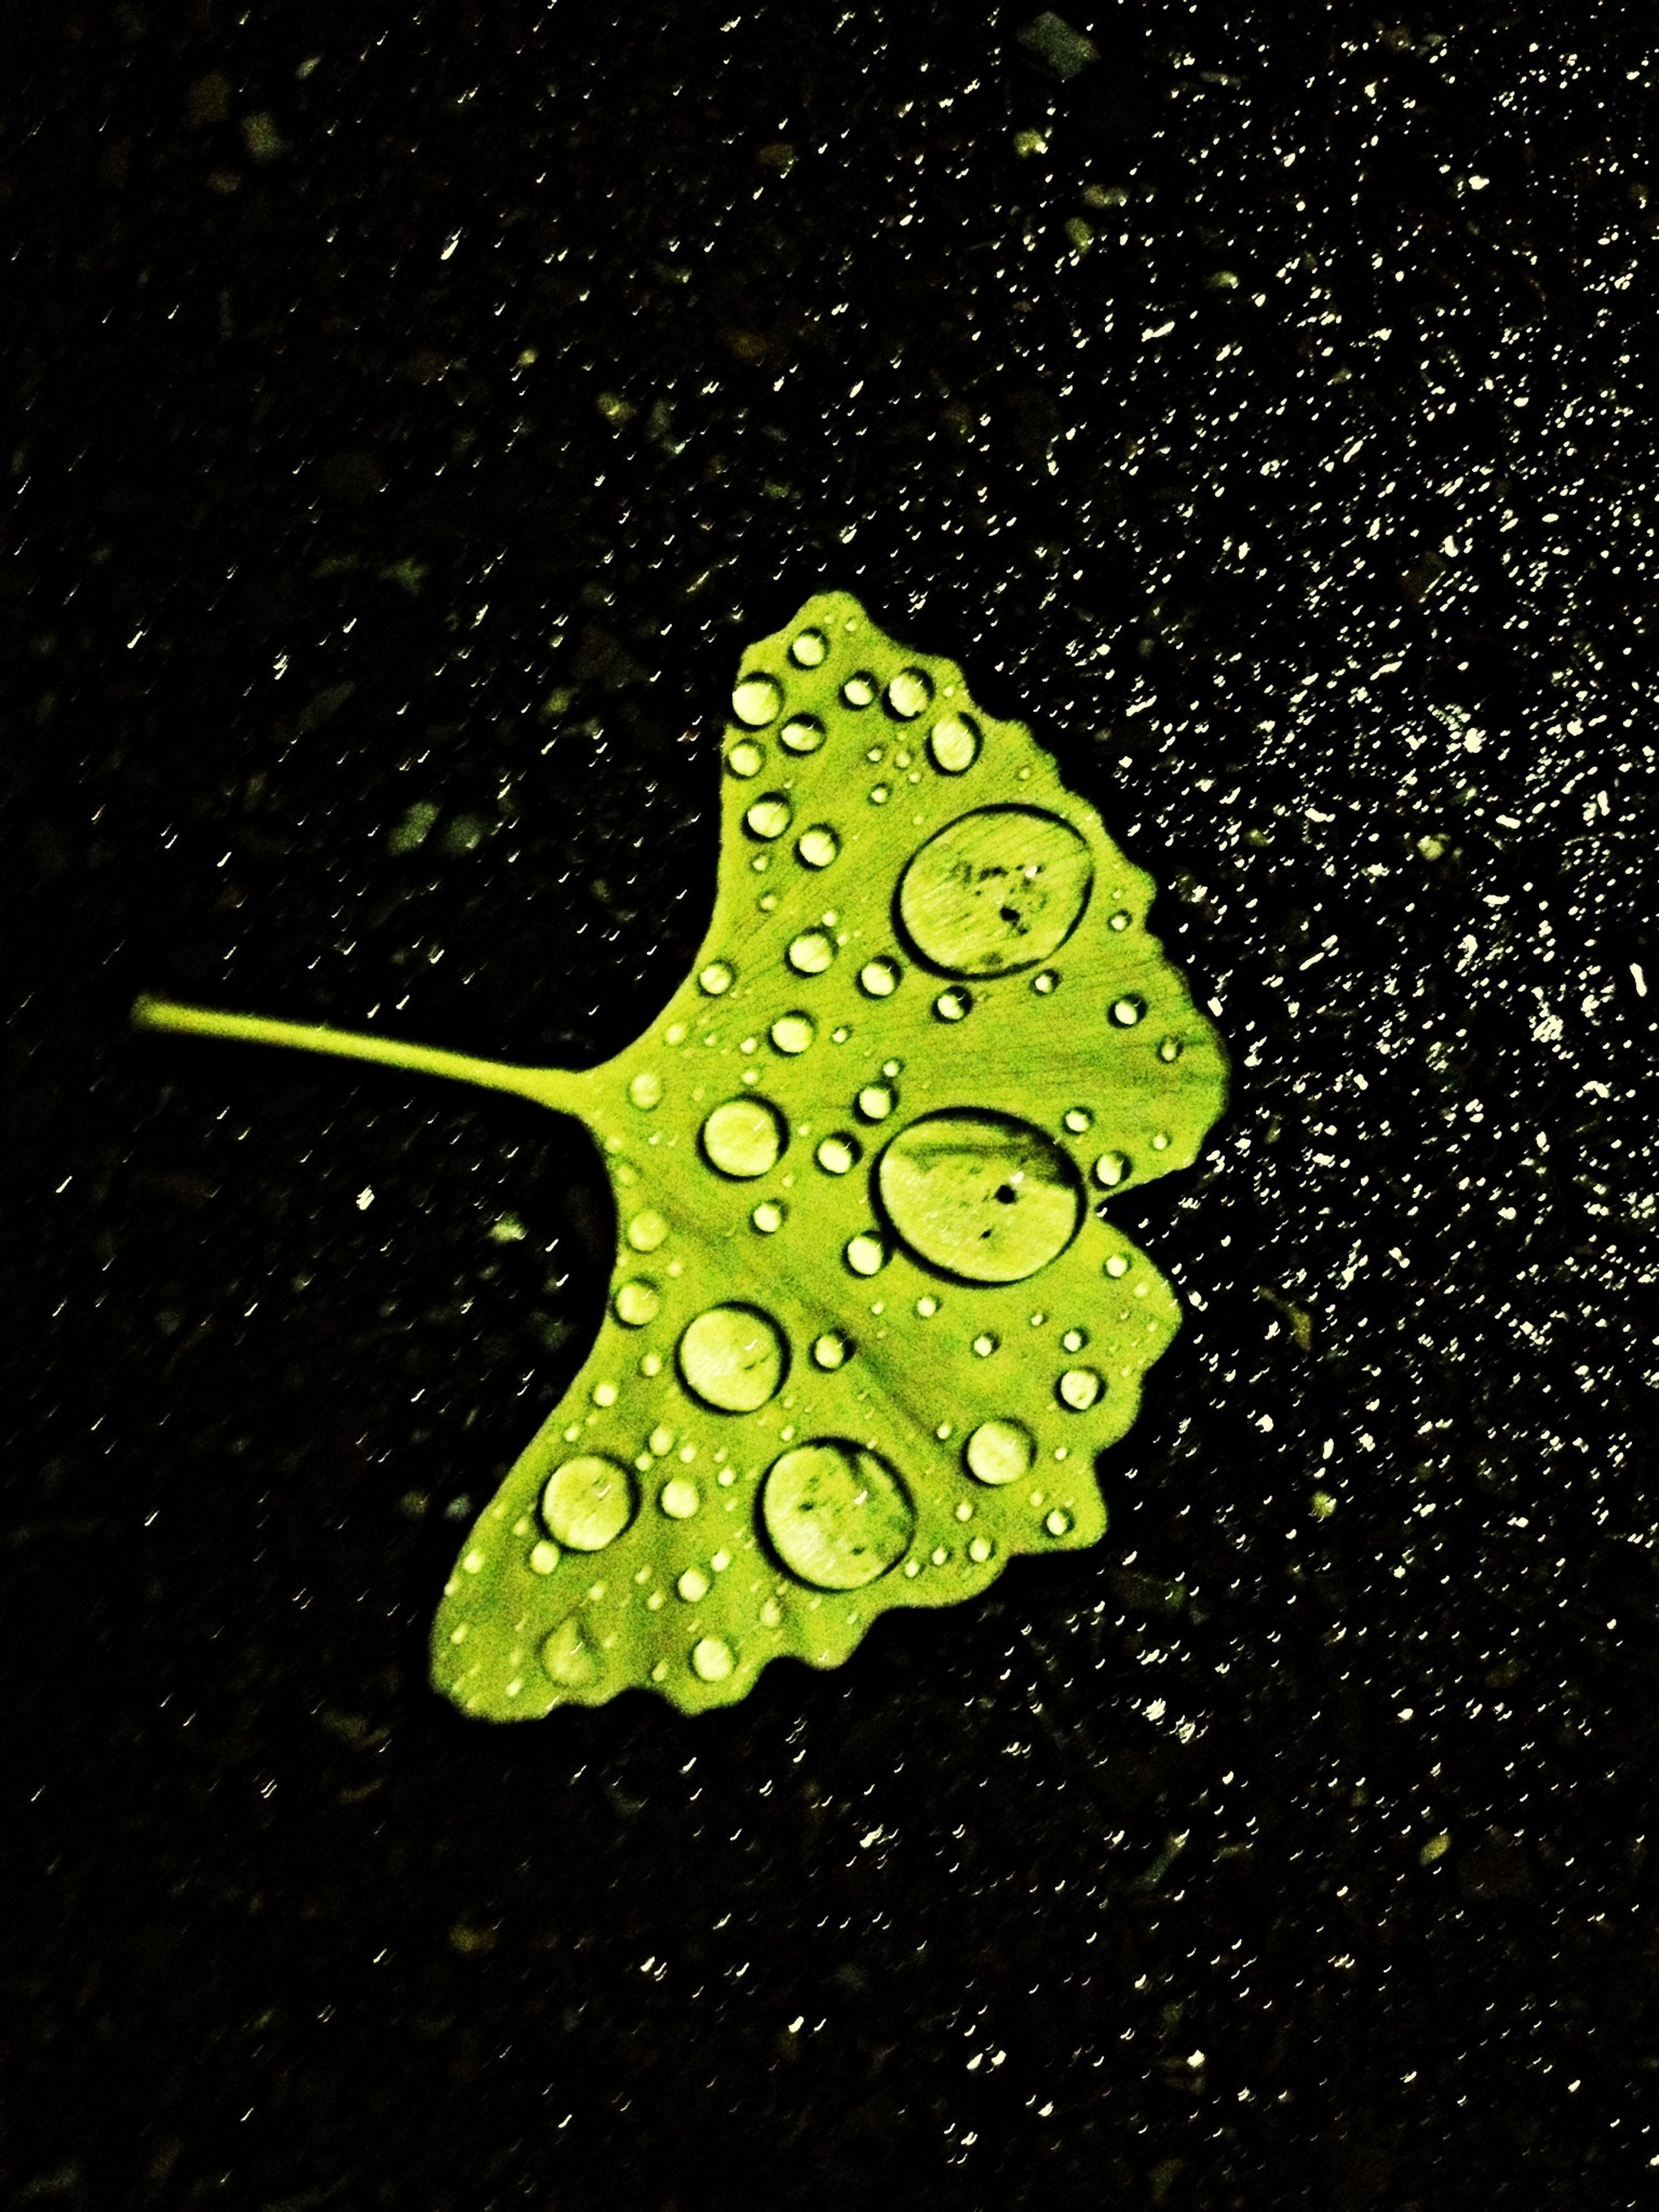 drop, wet, water, leaf, raindrop, rain, dew, close-up, green color, droplet, freshness, night, fragility, water drop, nature, beauty in nature, purity, growth, leaf vein, season